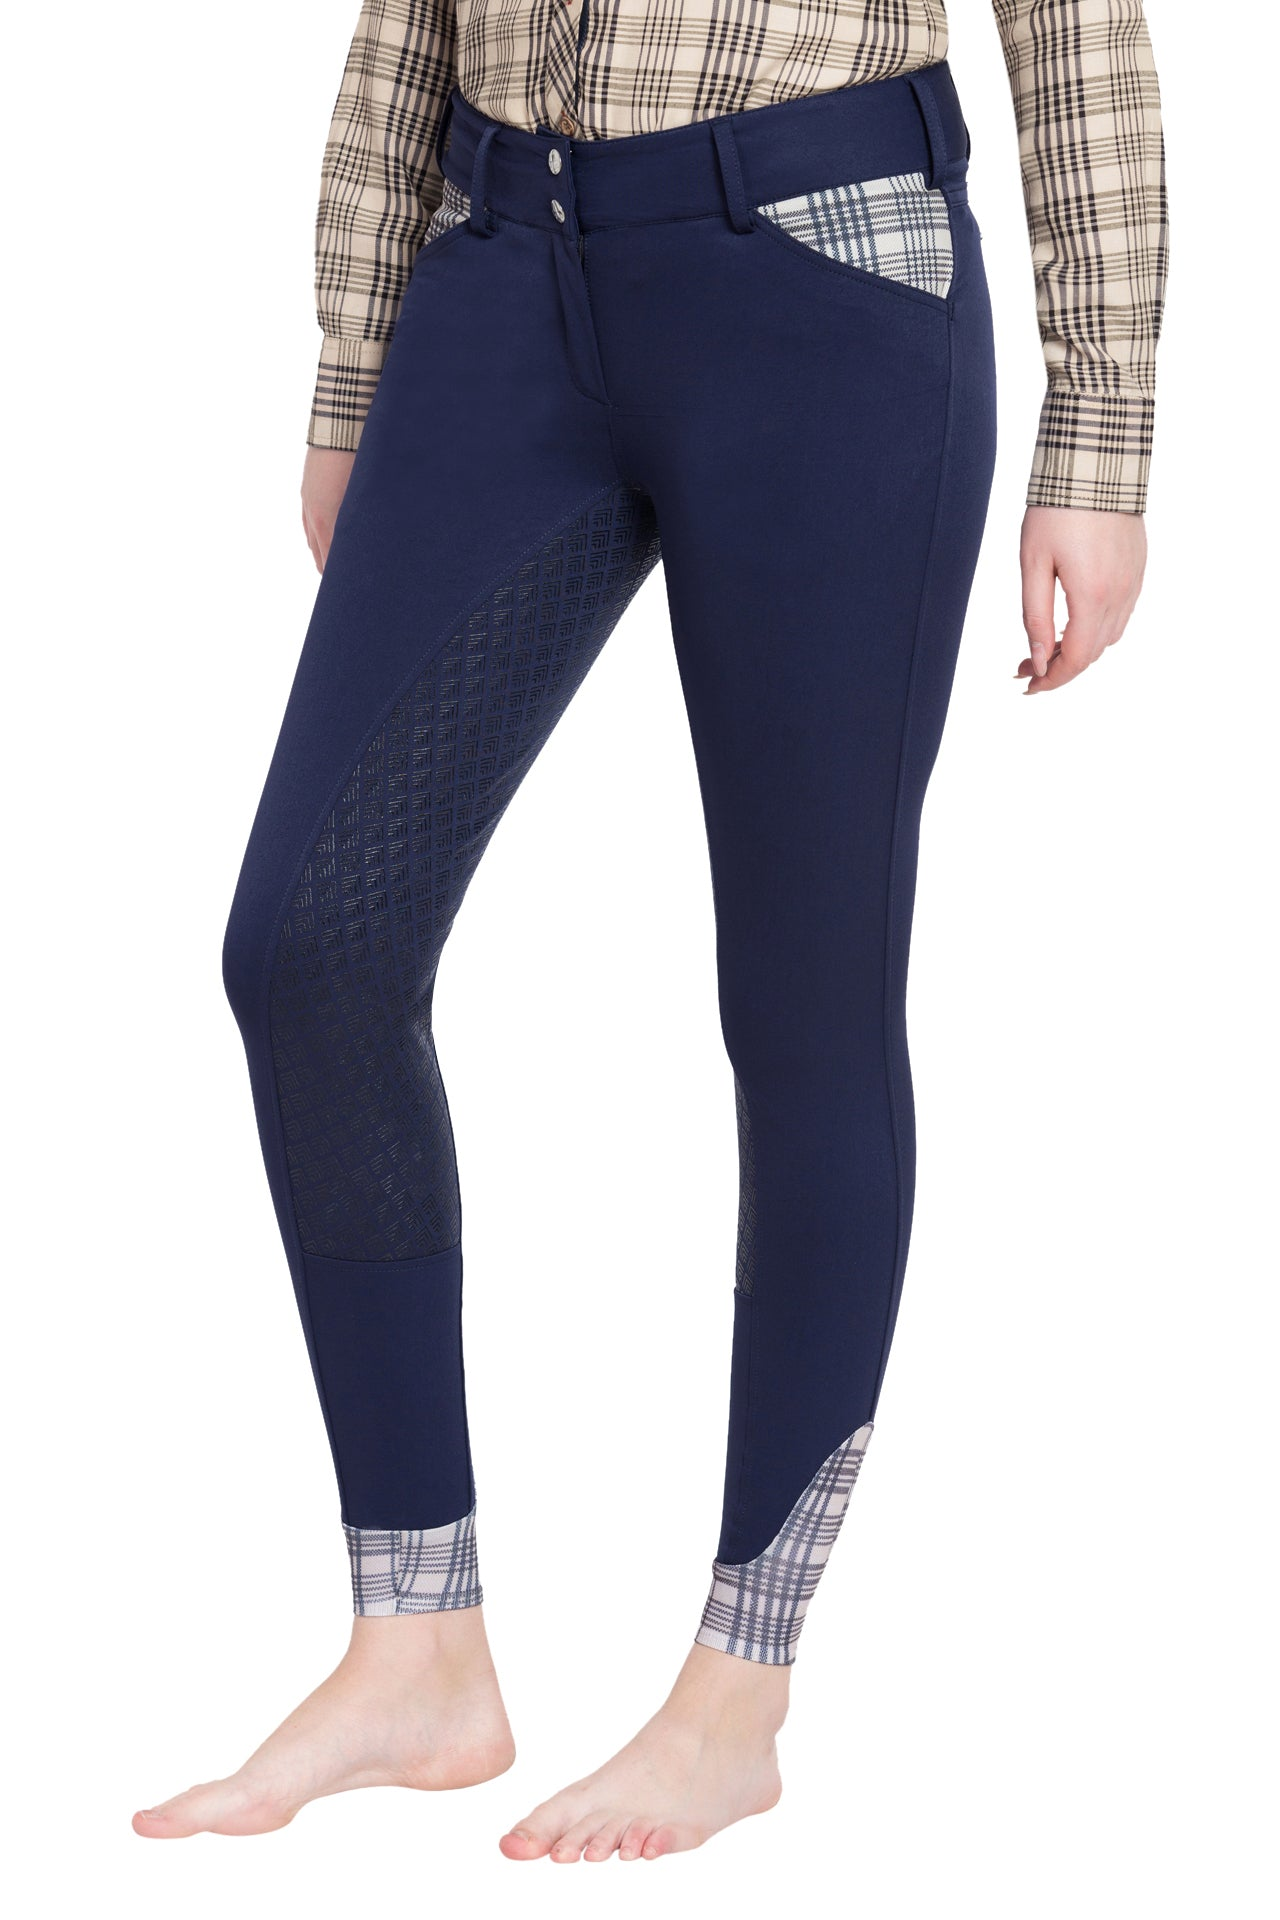 5/A Baker Ladies Pro Silicone Full Seat Breeches - 5/A Baker - Breeches.com